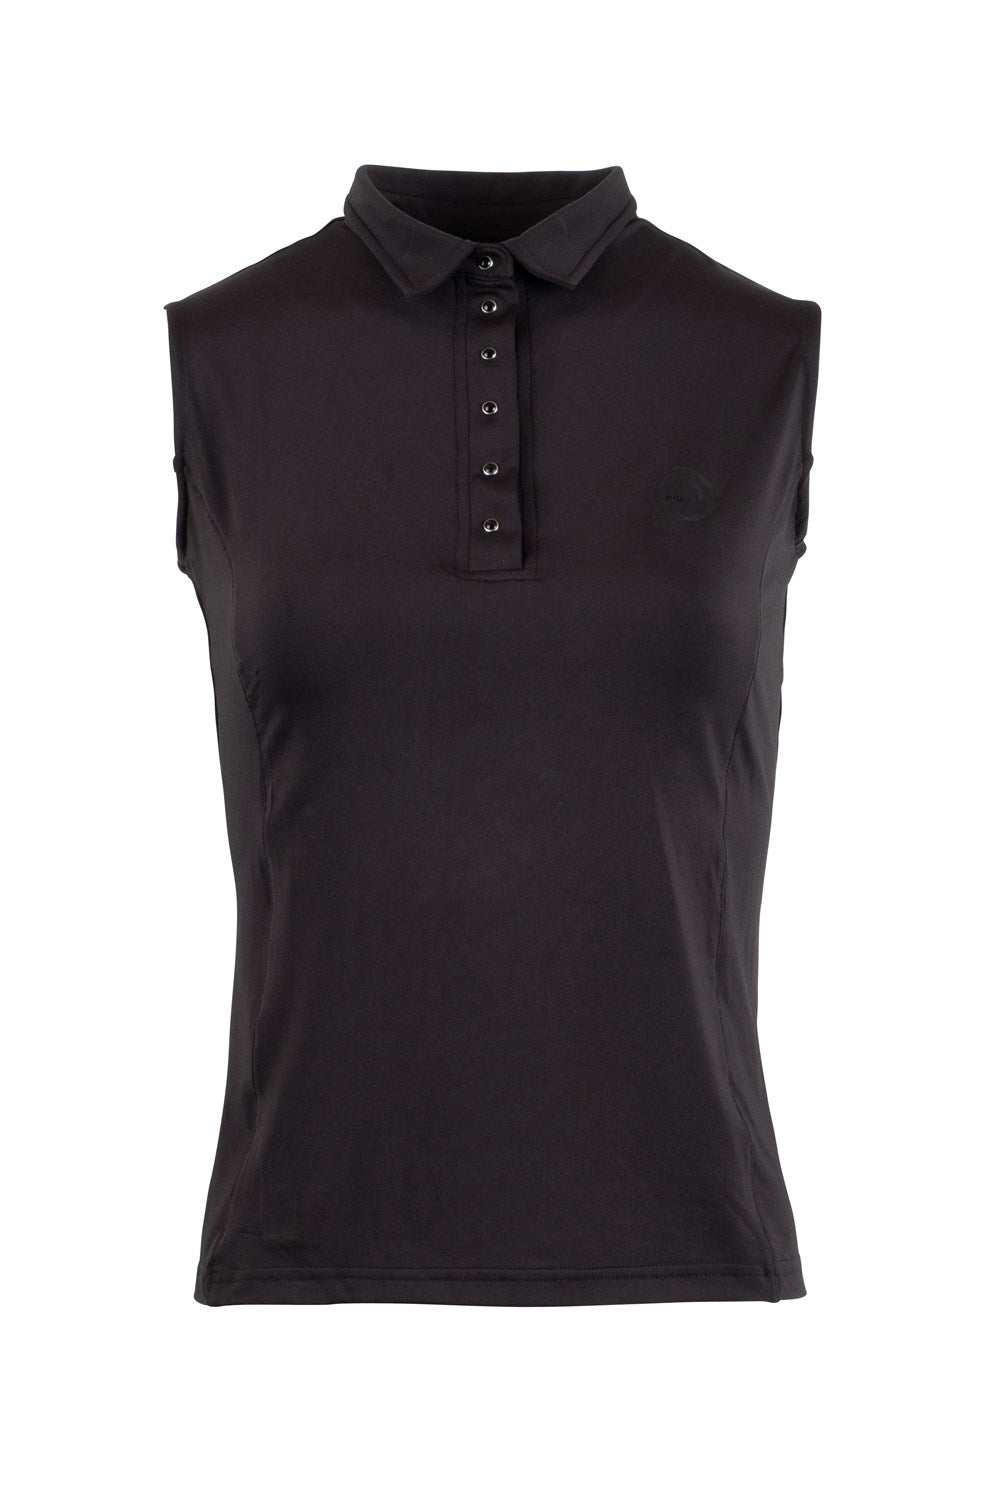 Charlie black sleveless polo